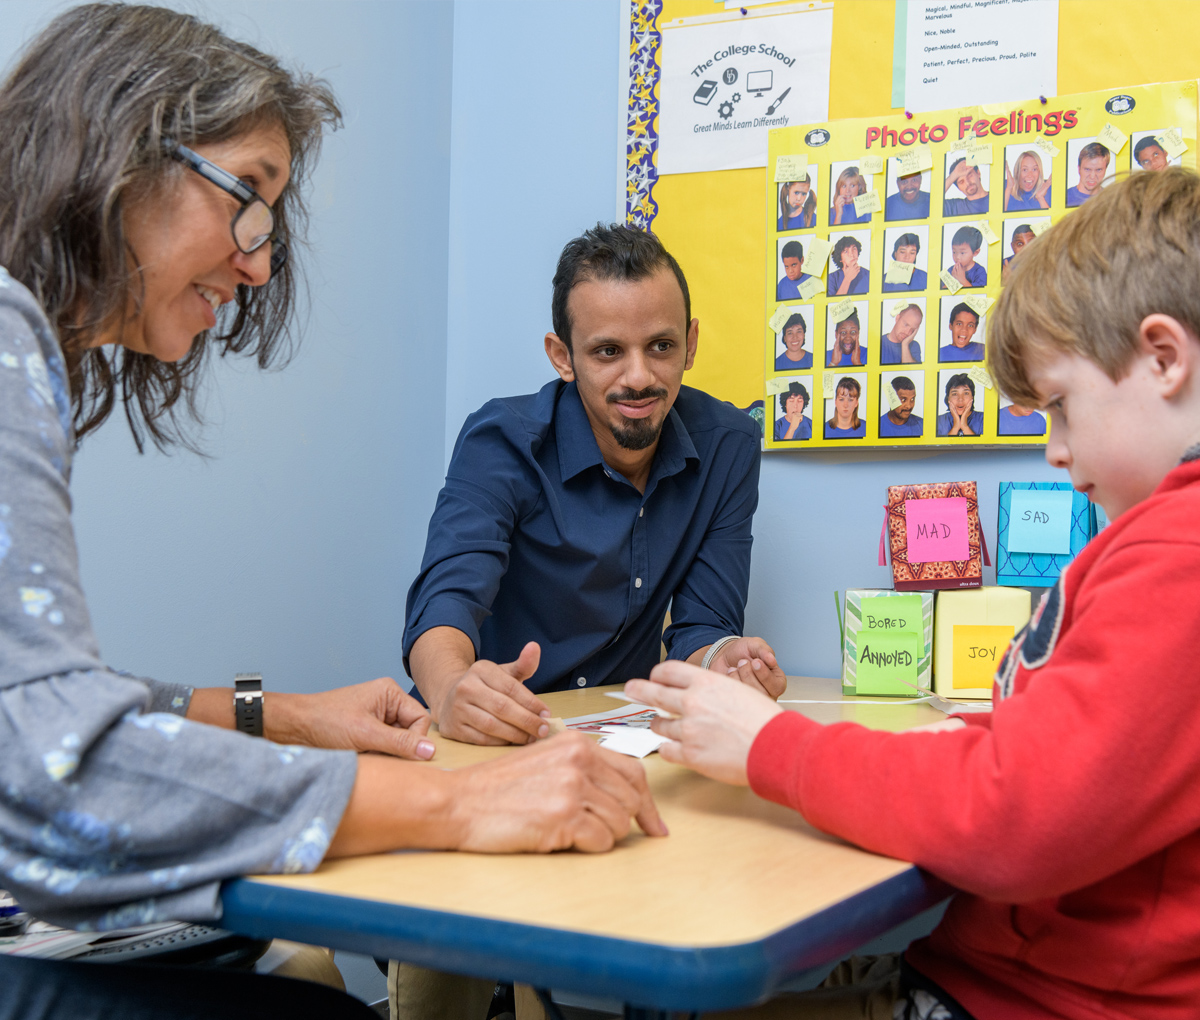 Two language therapists work with a student at The College School